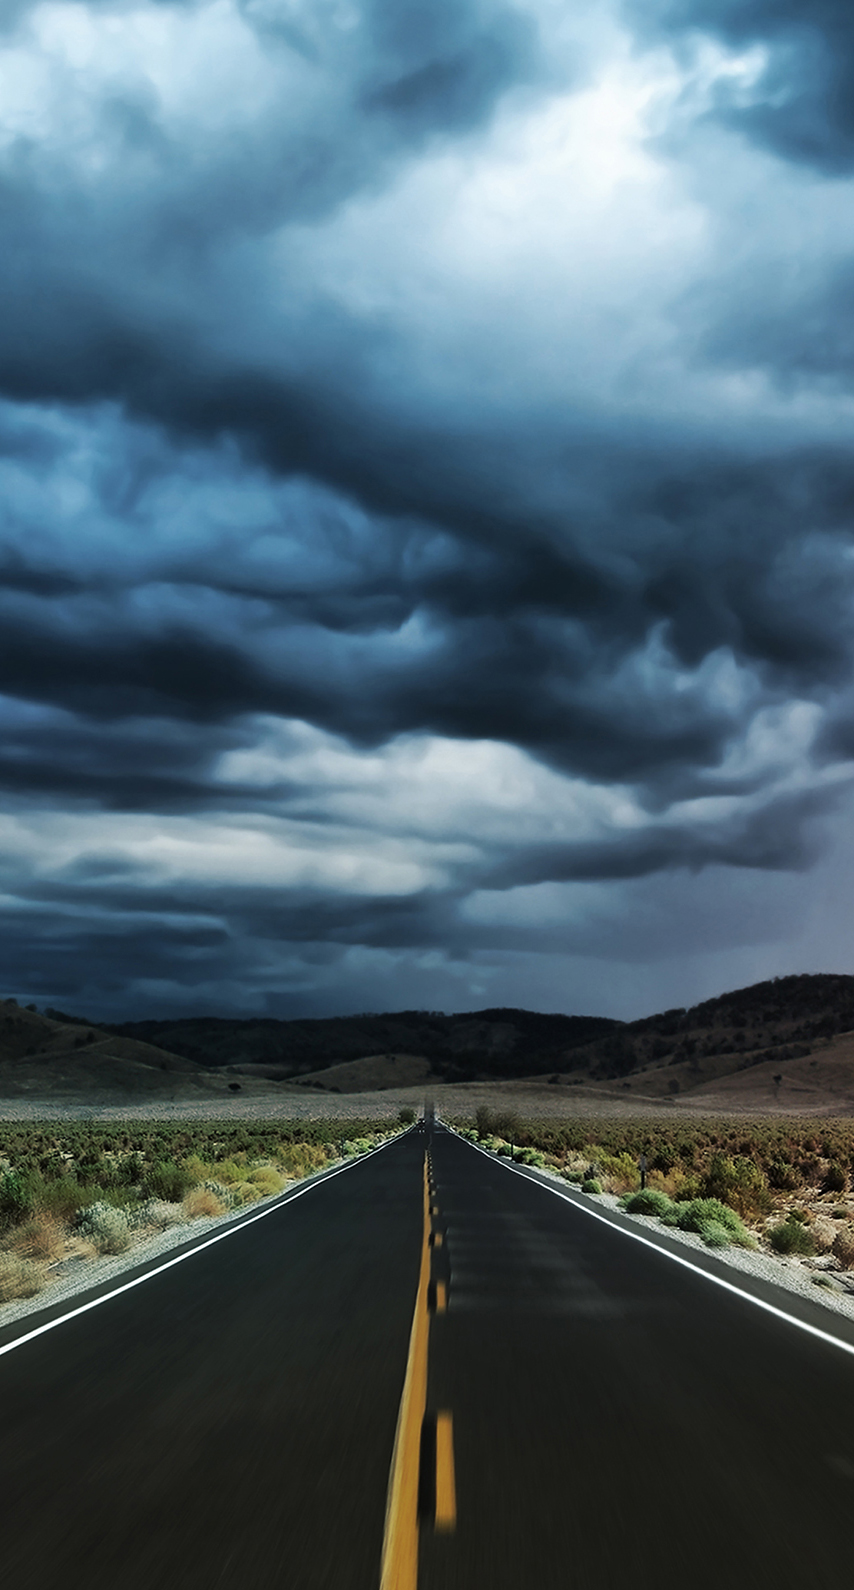 road, pattern, retro, tile, graphic, street, no person, cloud, transportation system, outdoors, empty